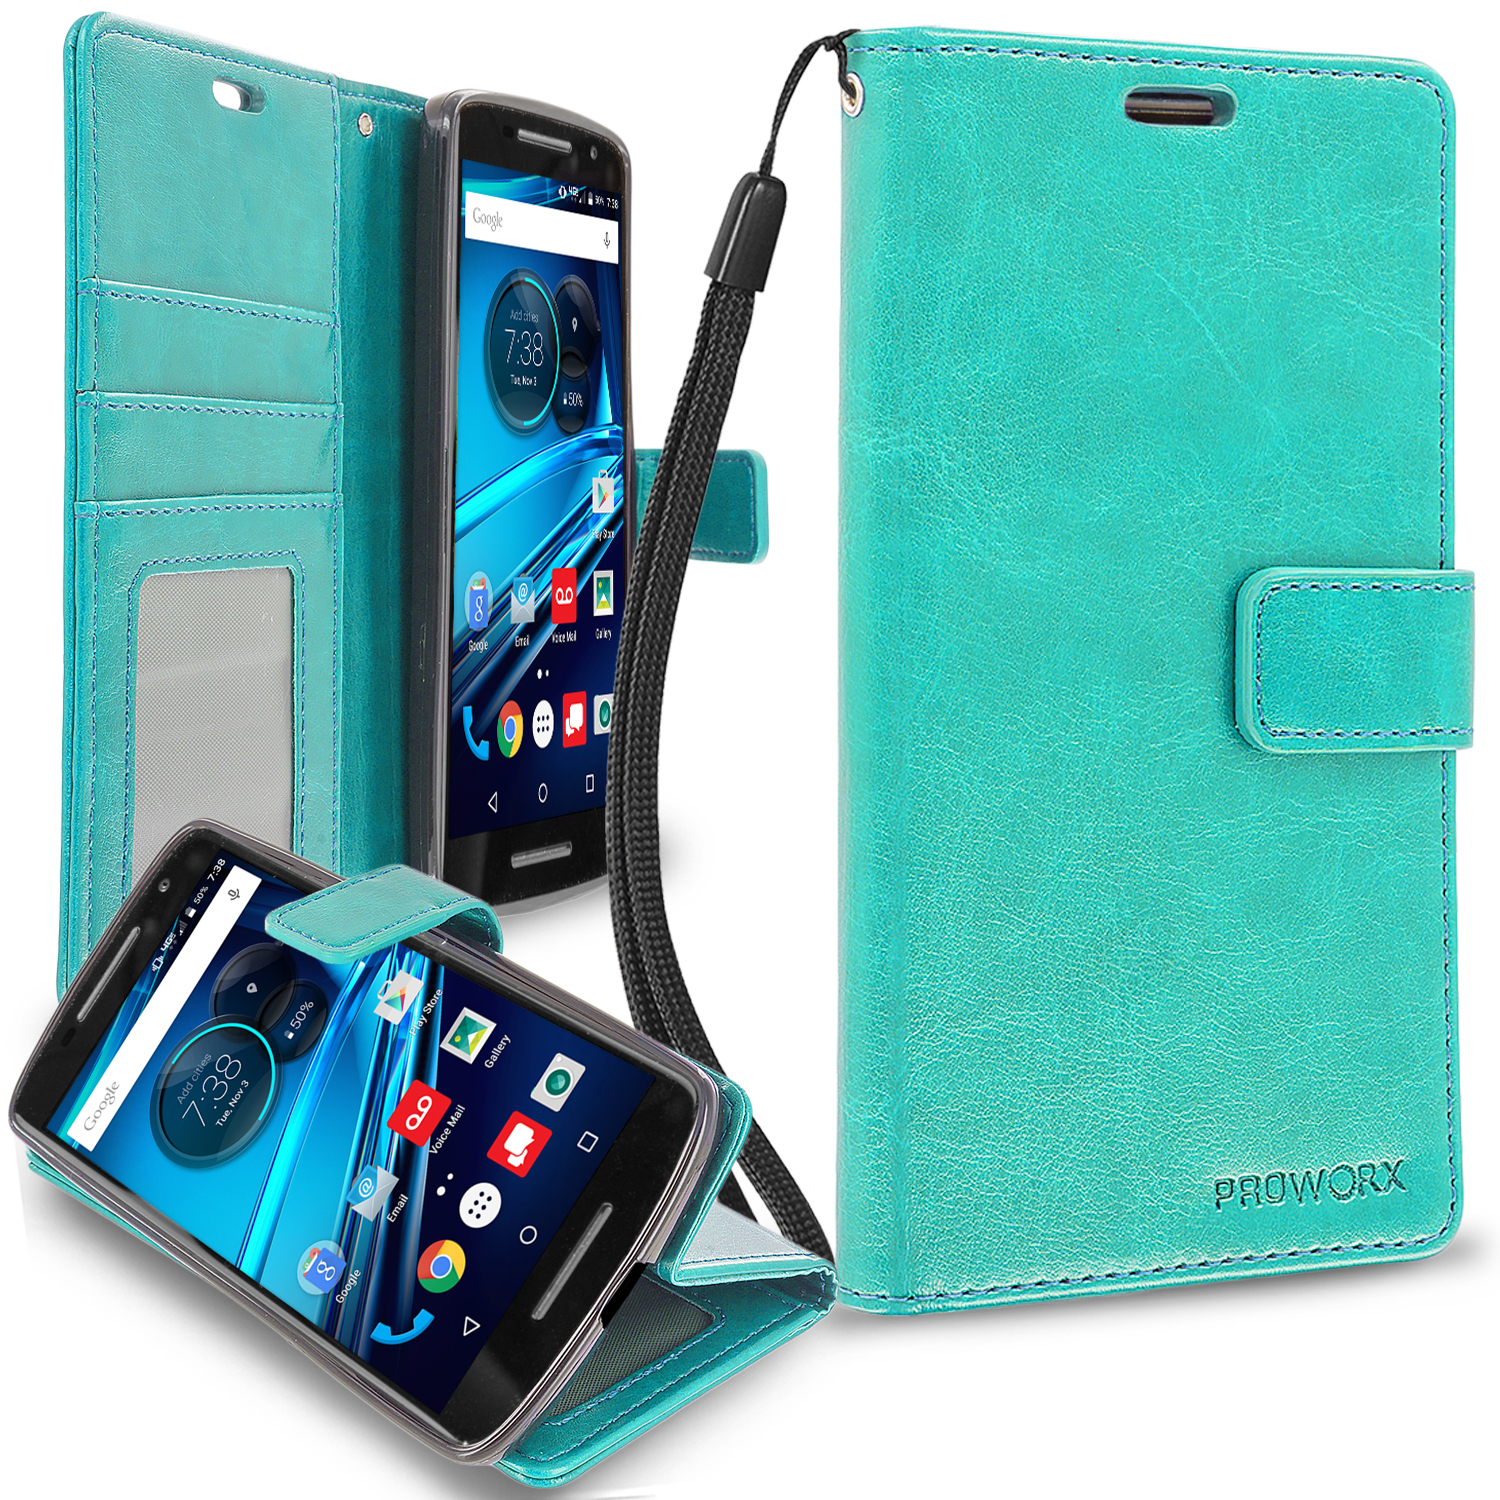 Motorola Droid Maxx 2 XT1565 Mint Green ProWorx Wallet Case Luxury PU Leather Case Cover With Card Slots & Stand